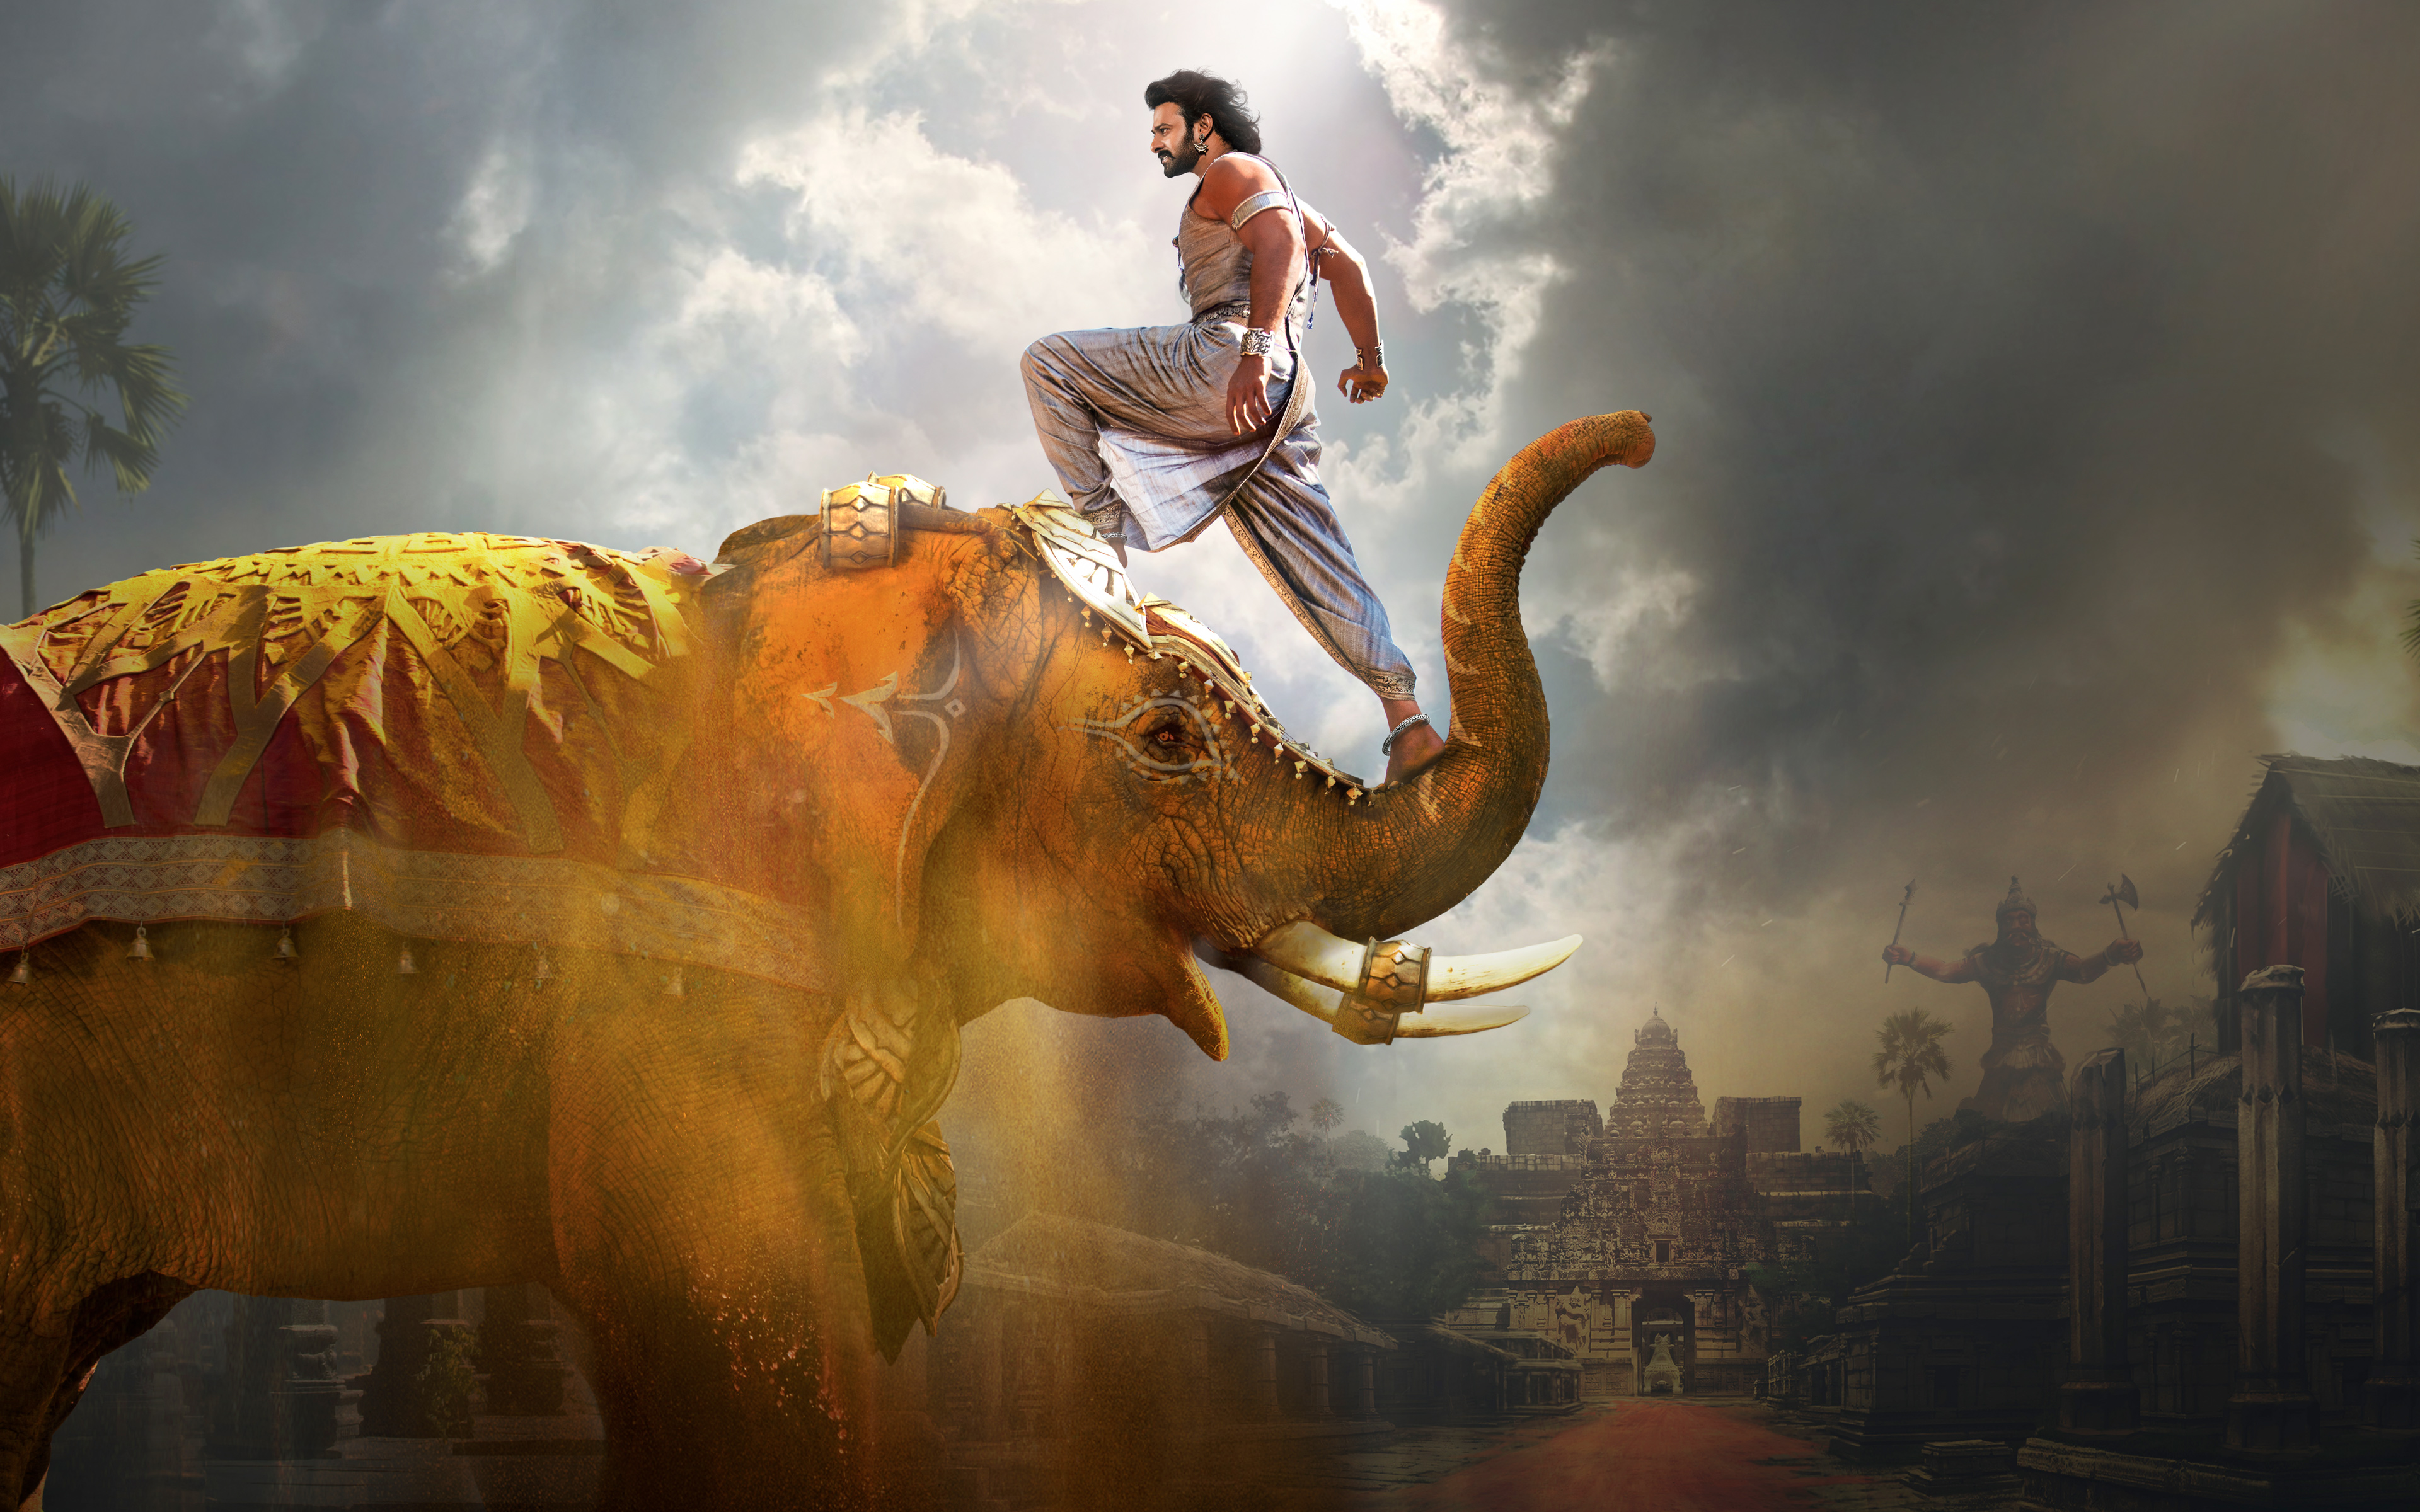 Baahubali 2 The Conclusion 4k Ultra HD Wallpaper Background 3840x2400